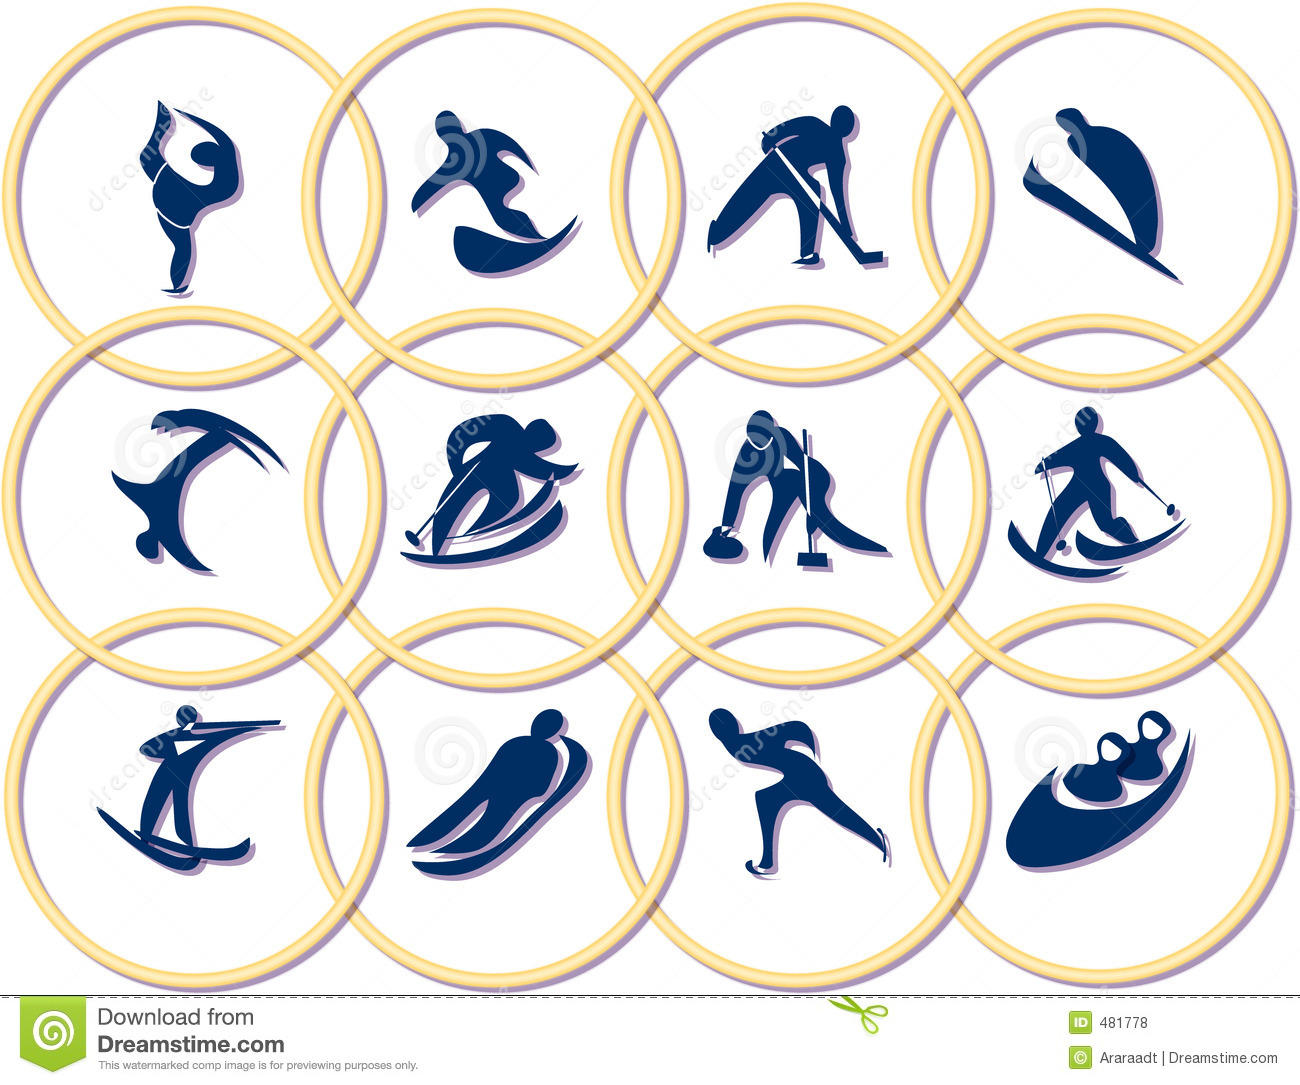 Olympic Games Symbols Royalty Free Stock Photos - Image: 481778